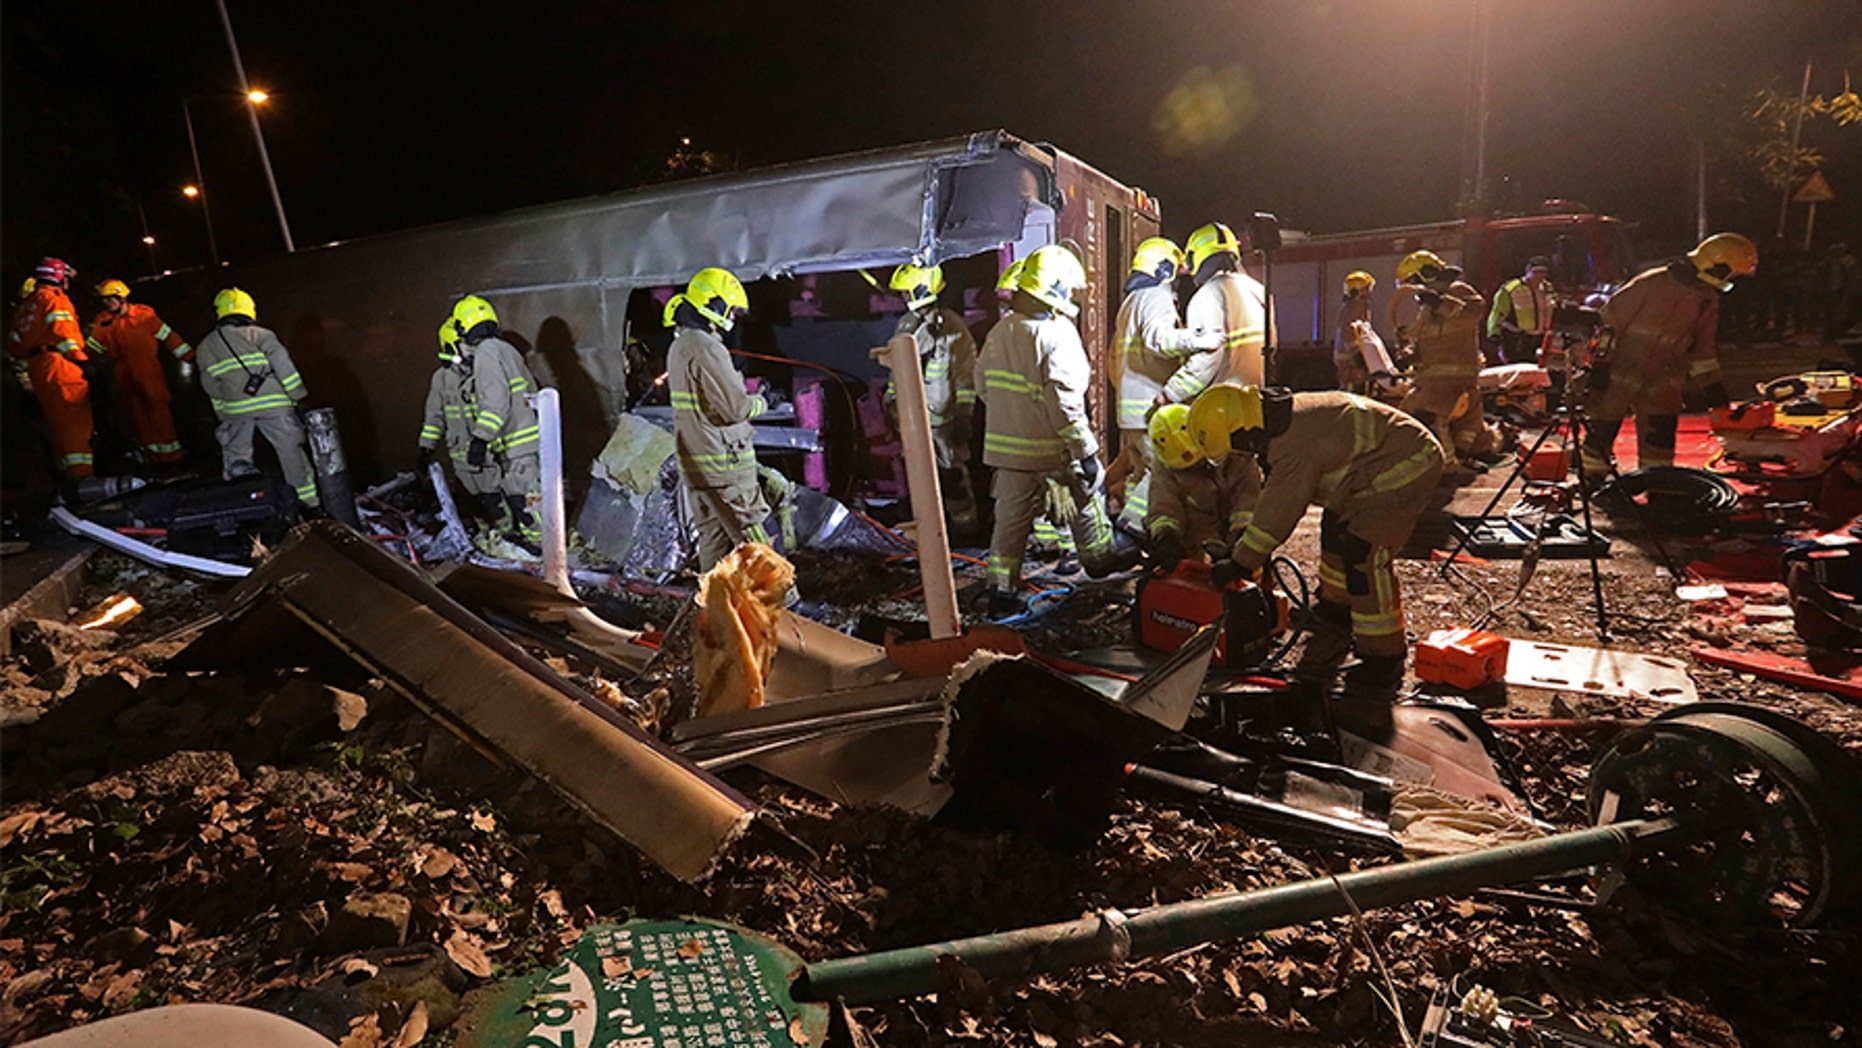 Firemen work at the scene of a bus crash in Hong Kong, Saturday, that killed 18 people.